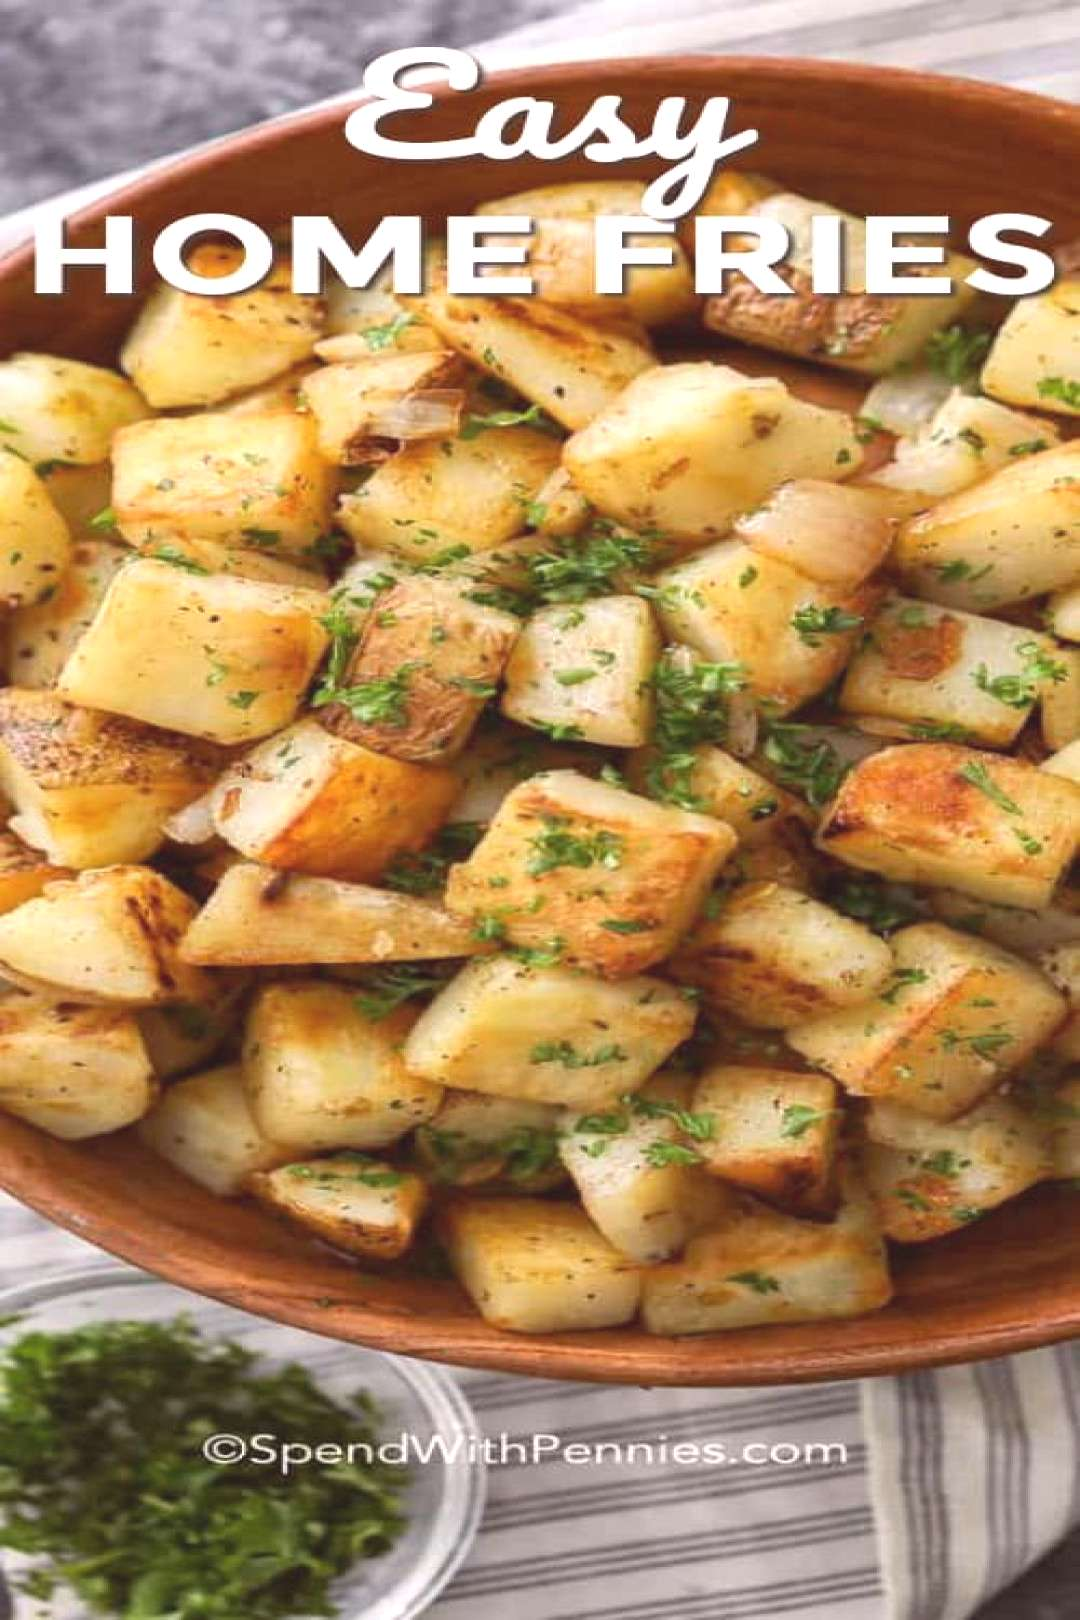 Easy Home Fries - Spend With Pennies - These easy home fries are the perfect breakfast side dish.